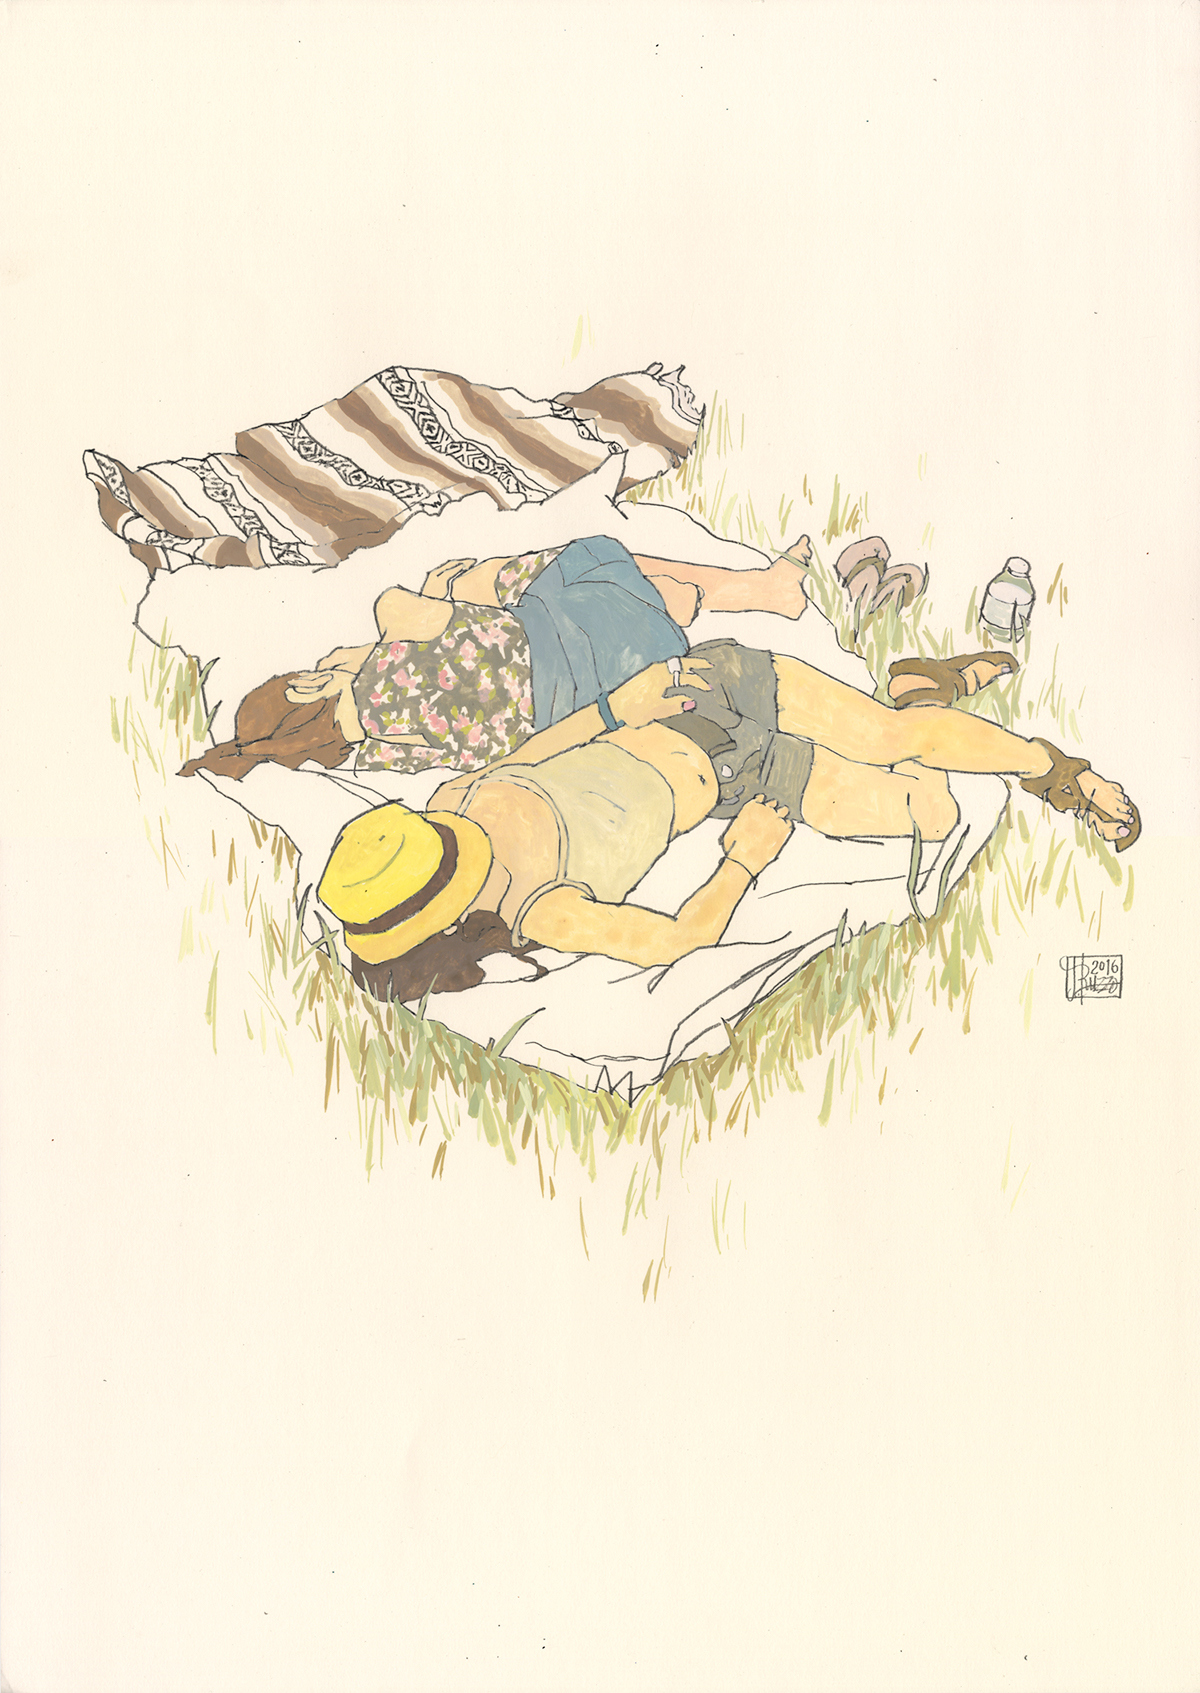 A color illustration of two figures lying in rest on a blanket in the grass.